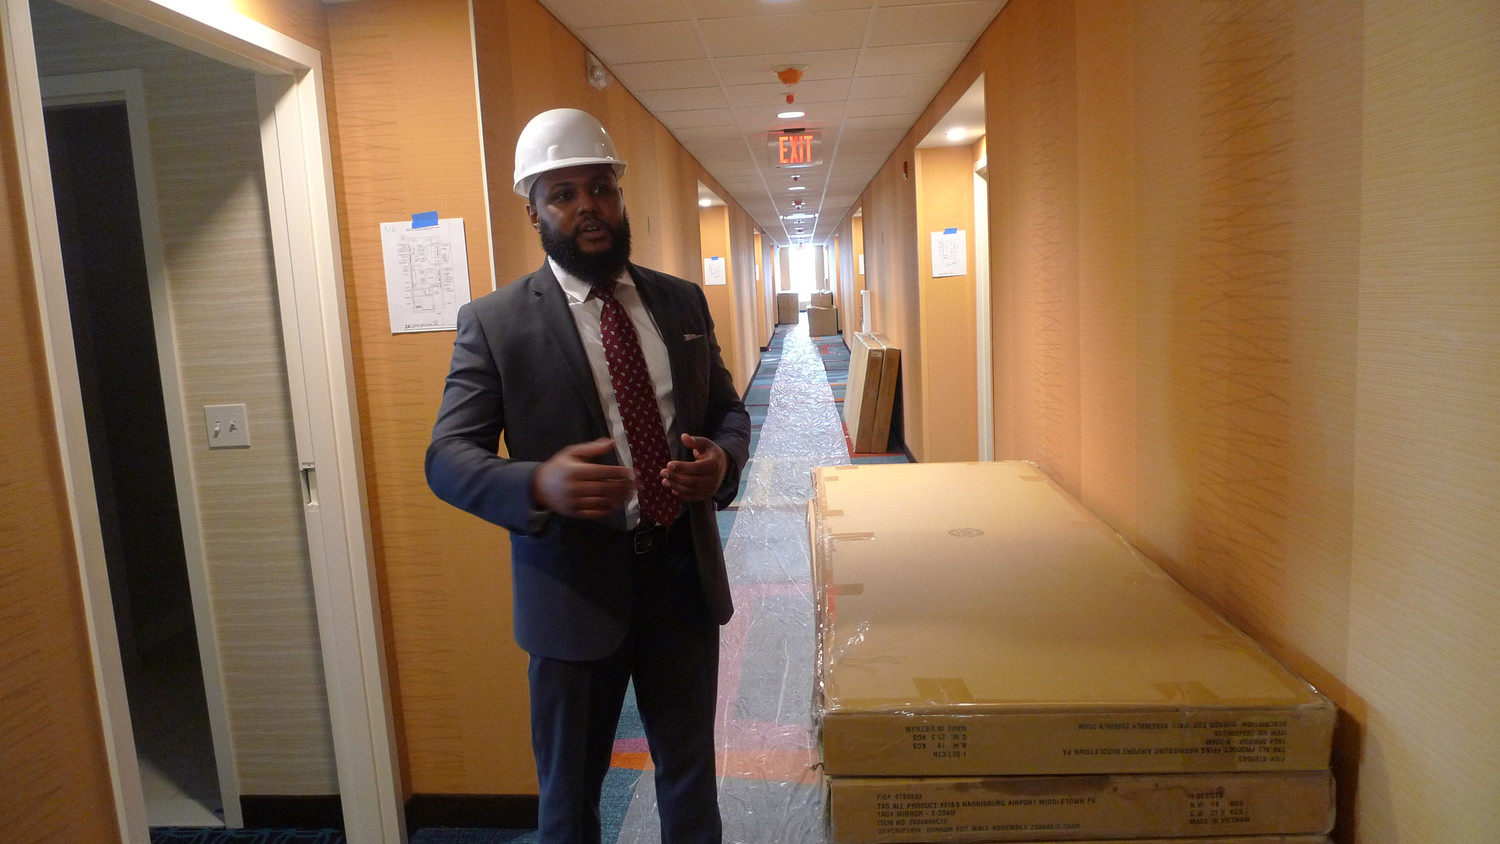 Surrounded in the hallway with beds and other amenities that will be going into the rooms, General Manager Mark Anthony Burnett II talks about the features that will be part of the new Fairfield Inn & Suites that is to open on Harrisburg International Airport around the second week of September.